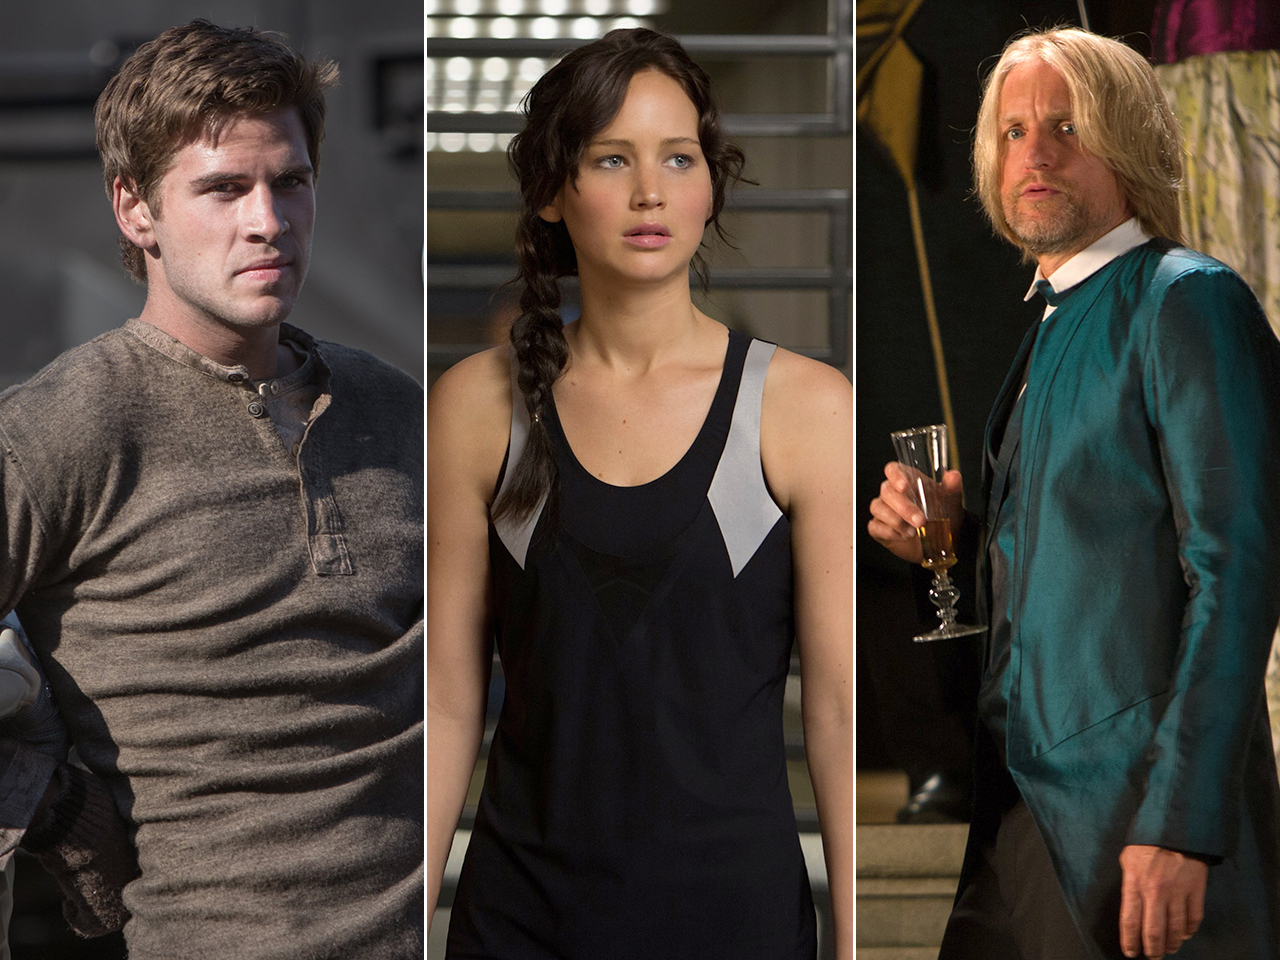 Liam Hemsworth, Jennifer Lawrence and Woody Harrelson in